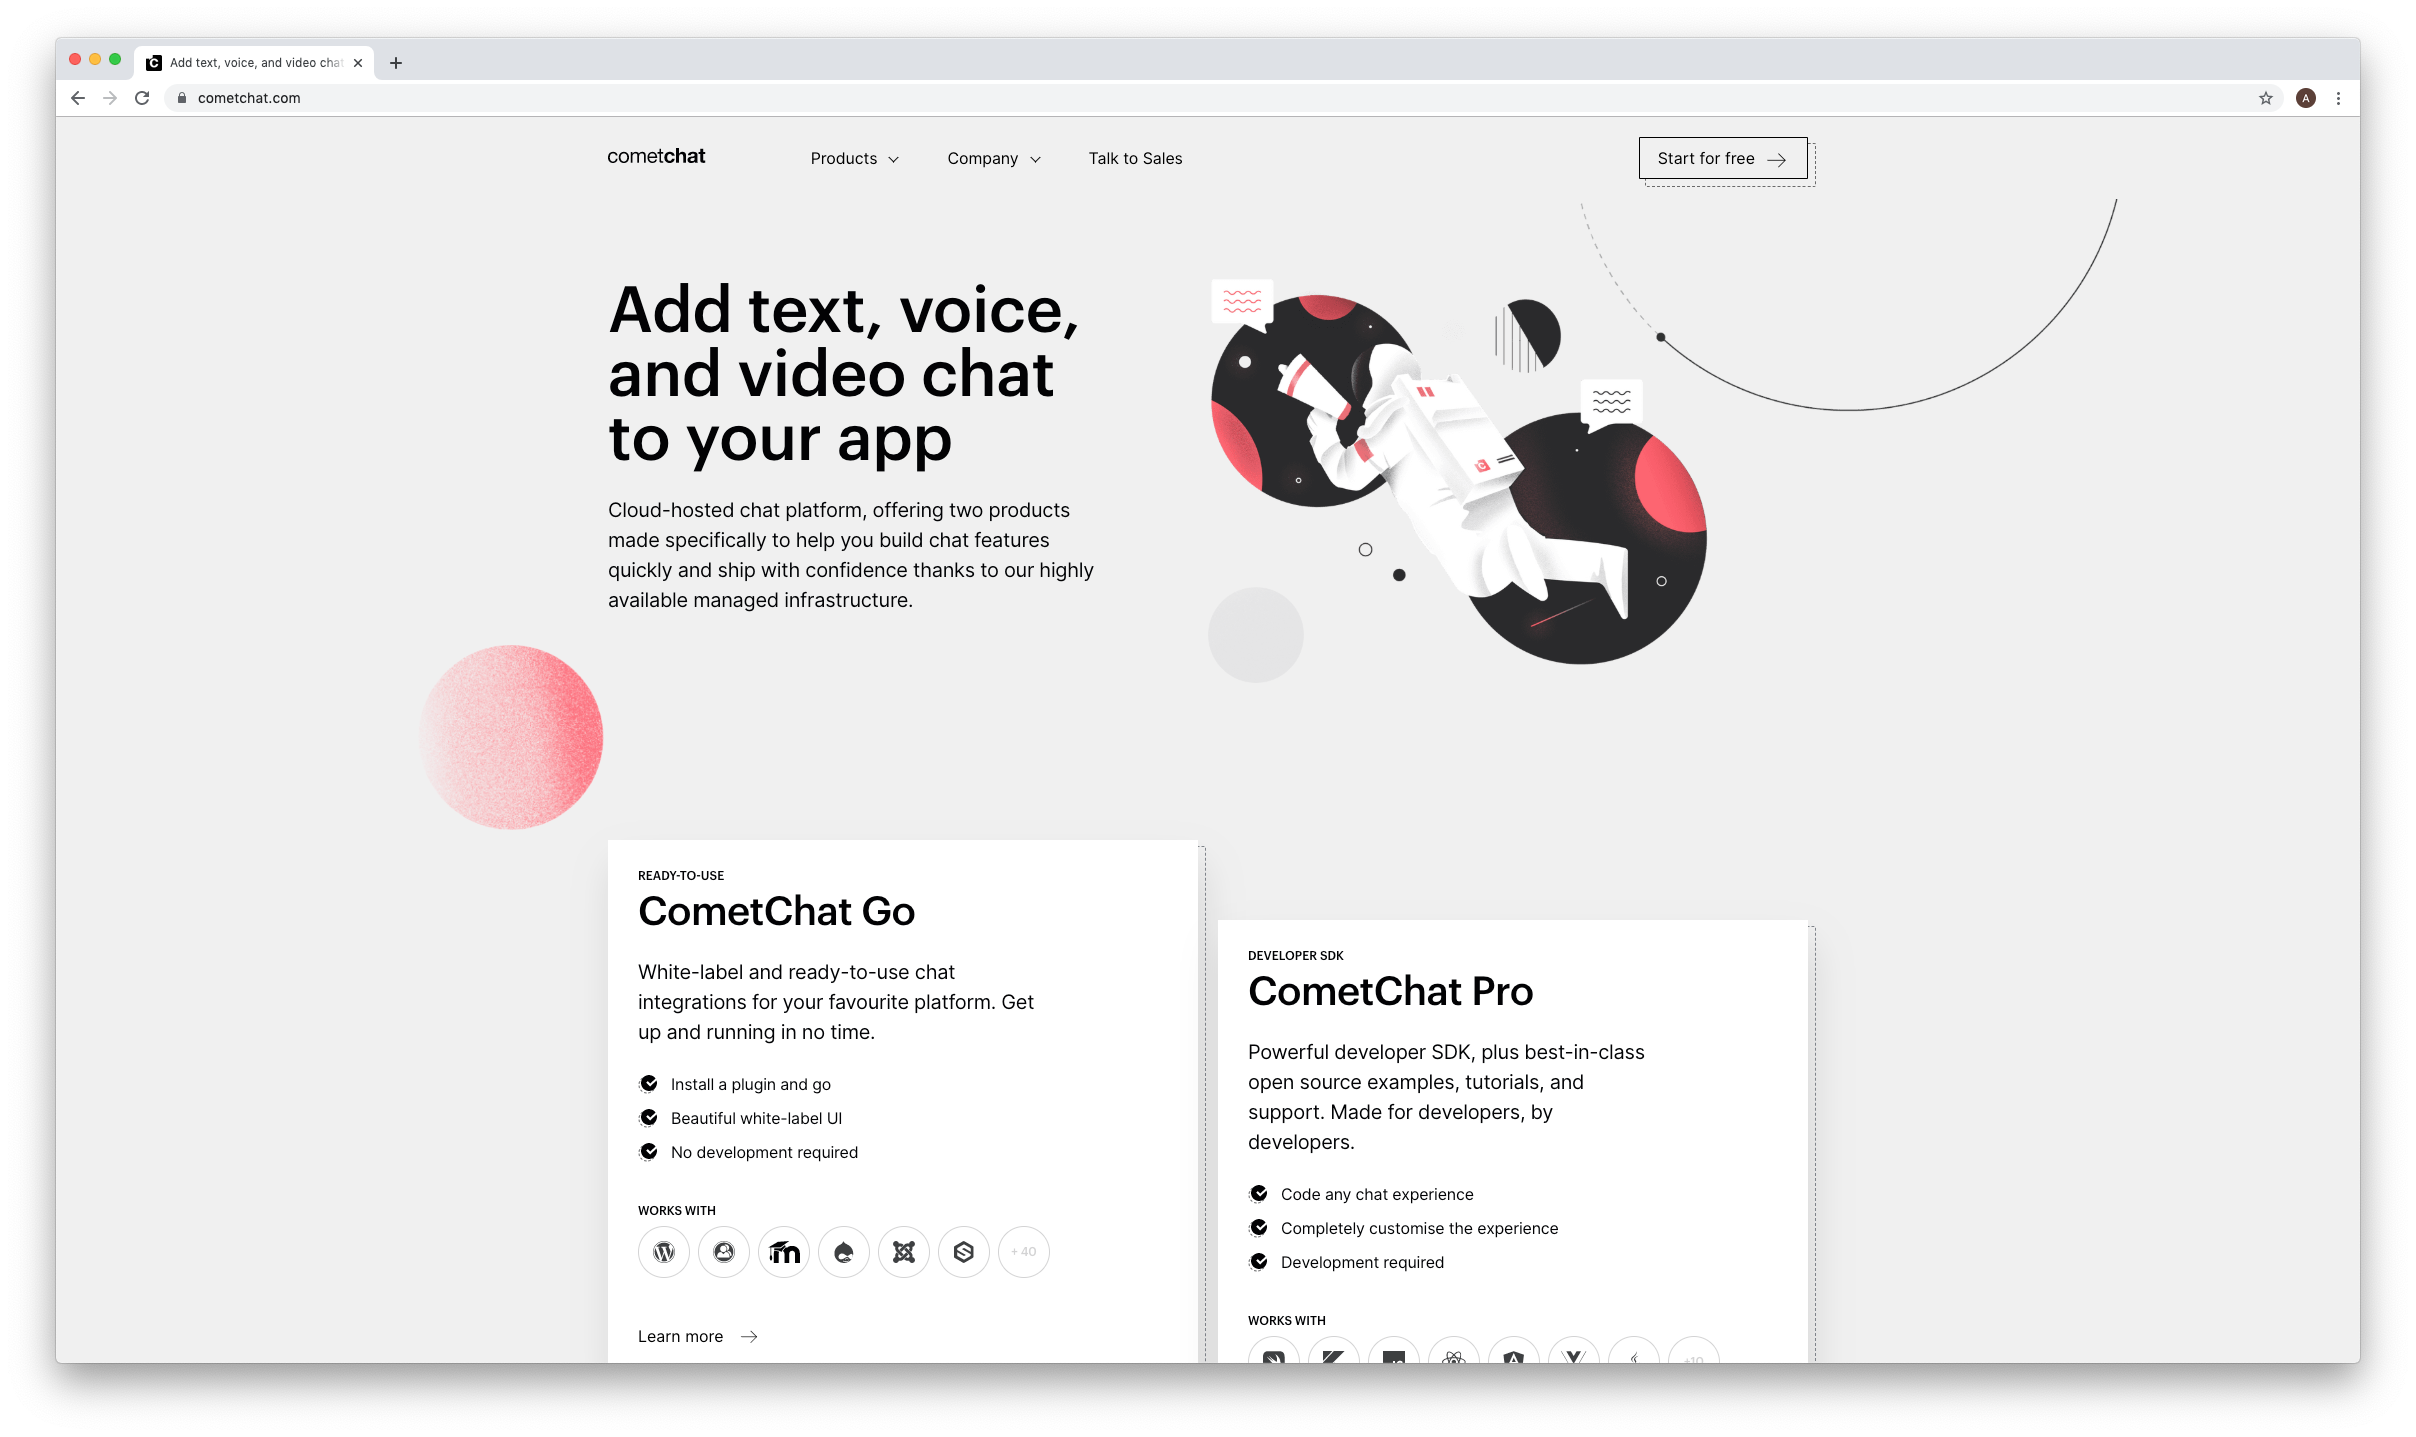 The new CometChat homepage